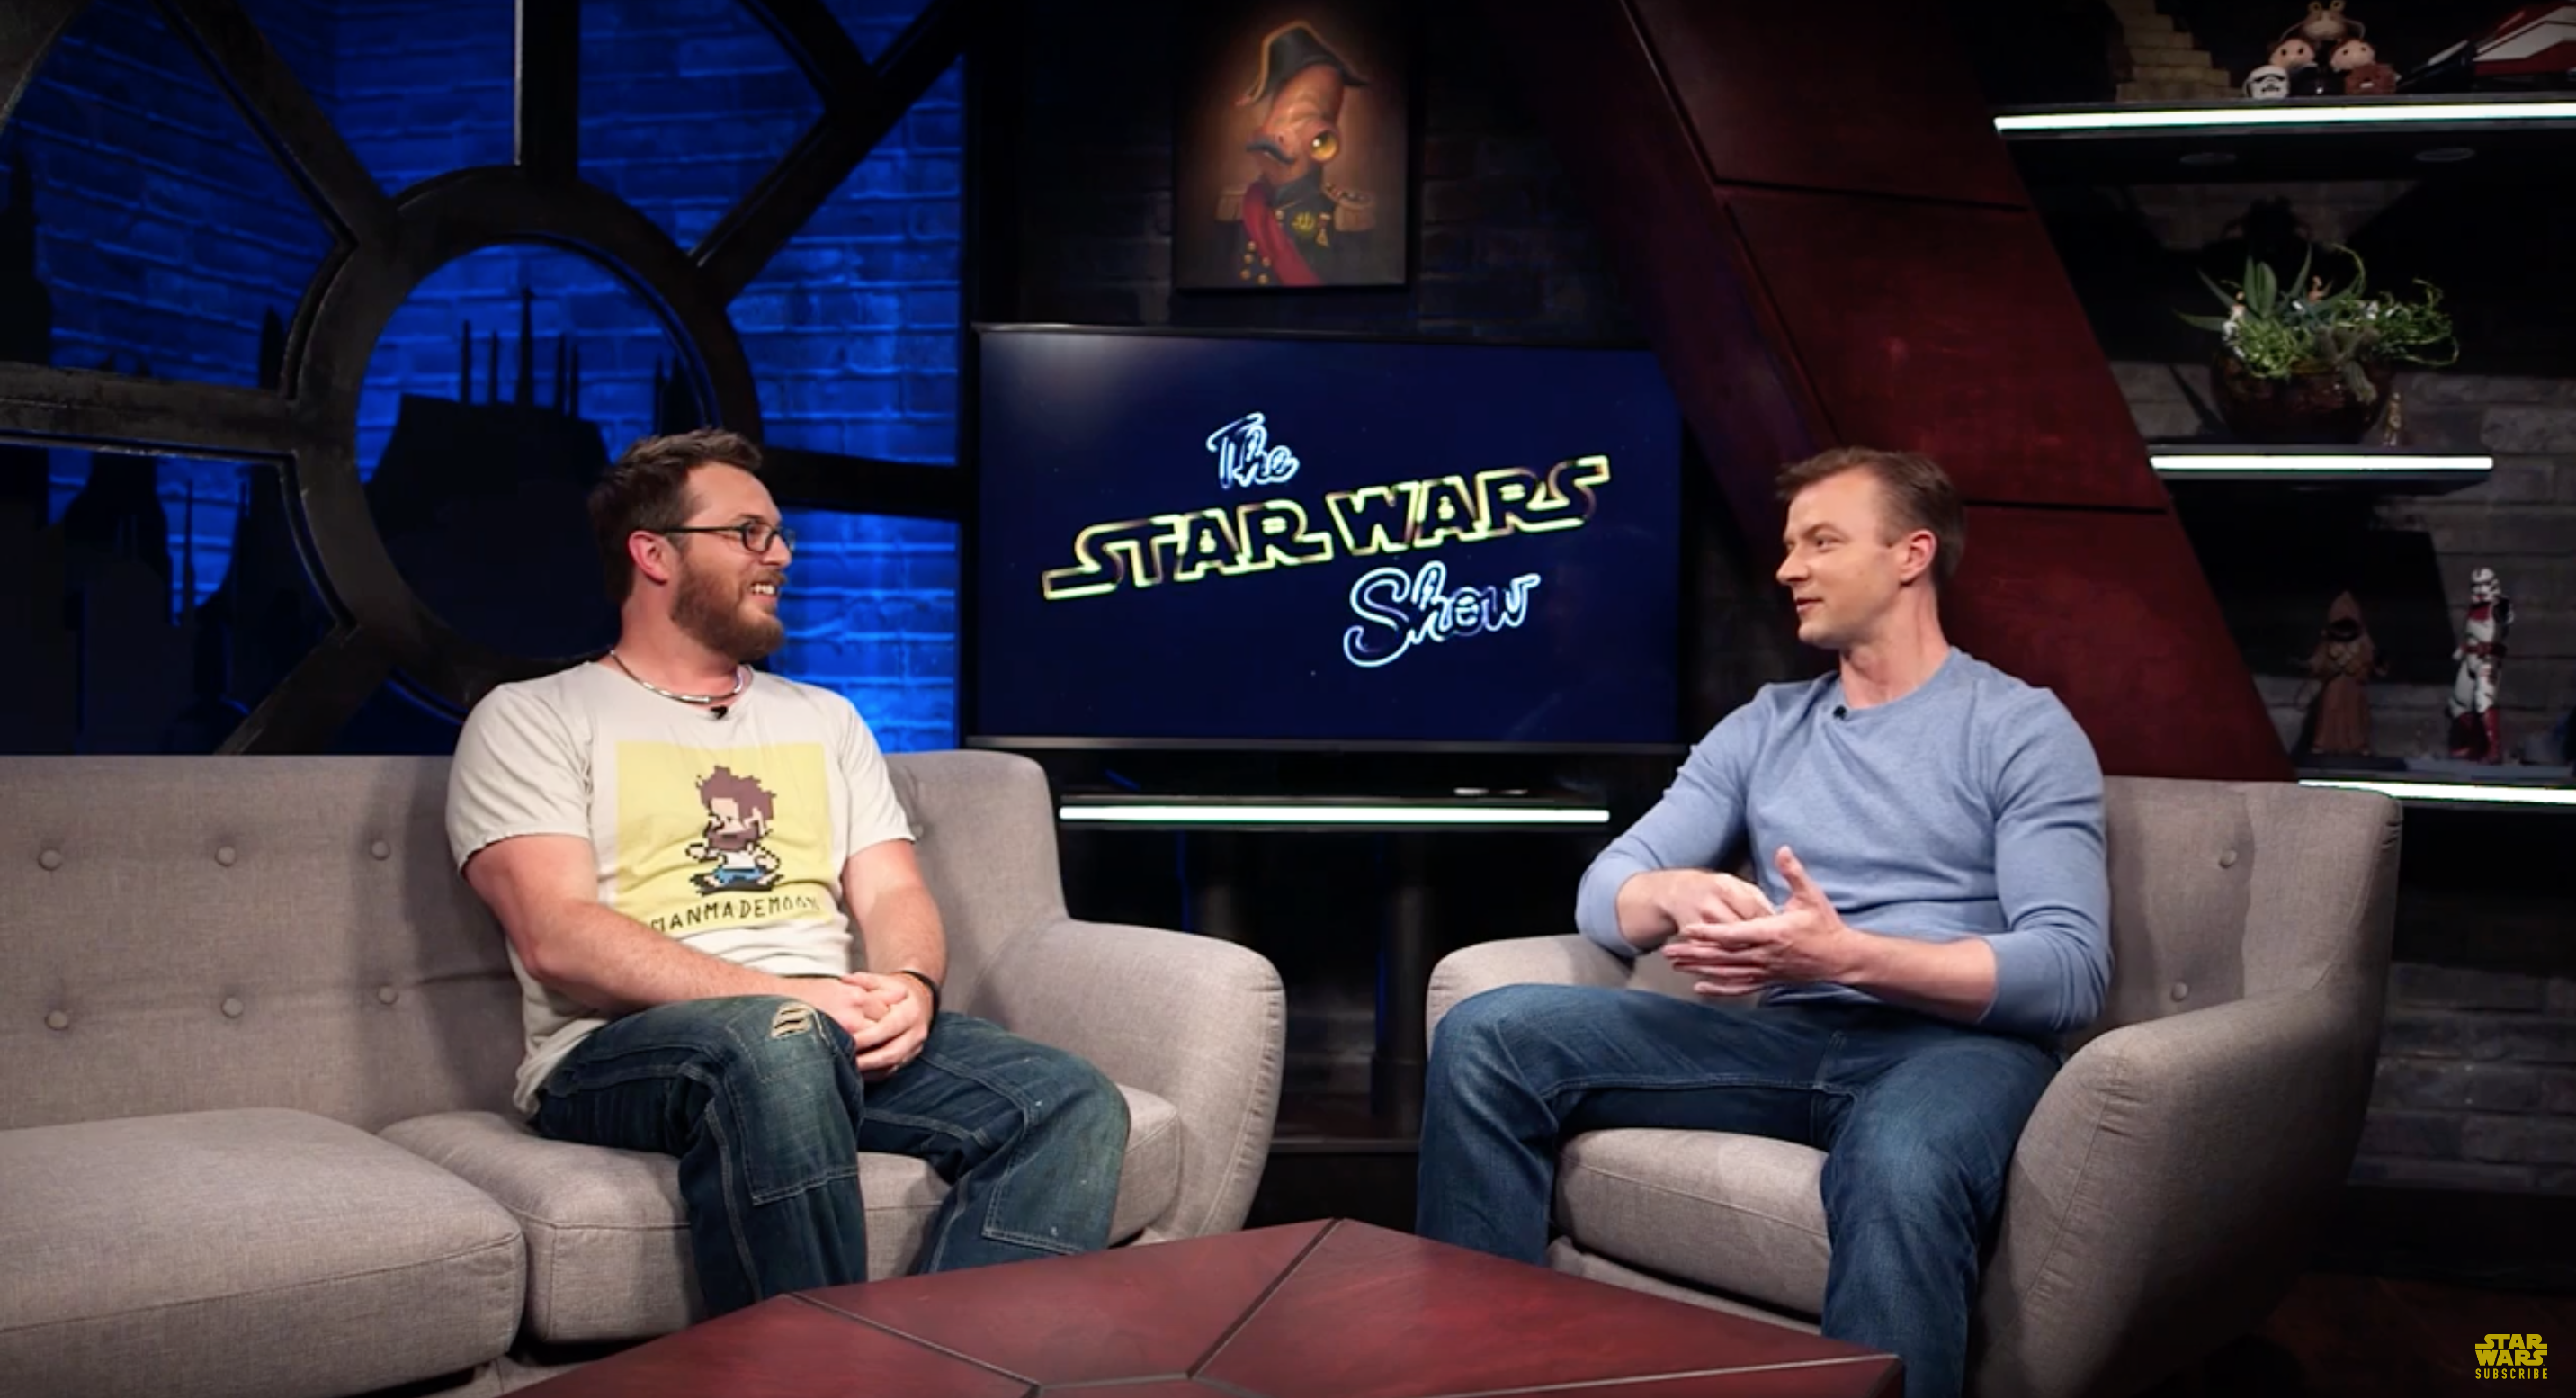 WARCRAFT: Duncan Jones On The Star Wars Show